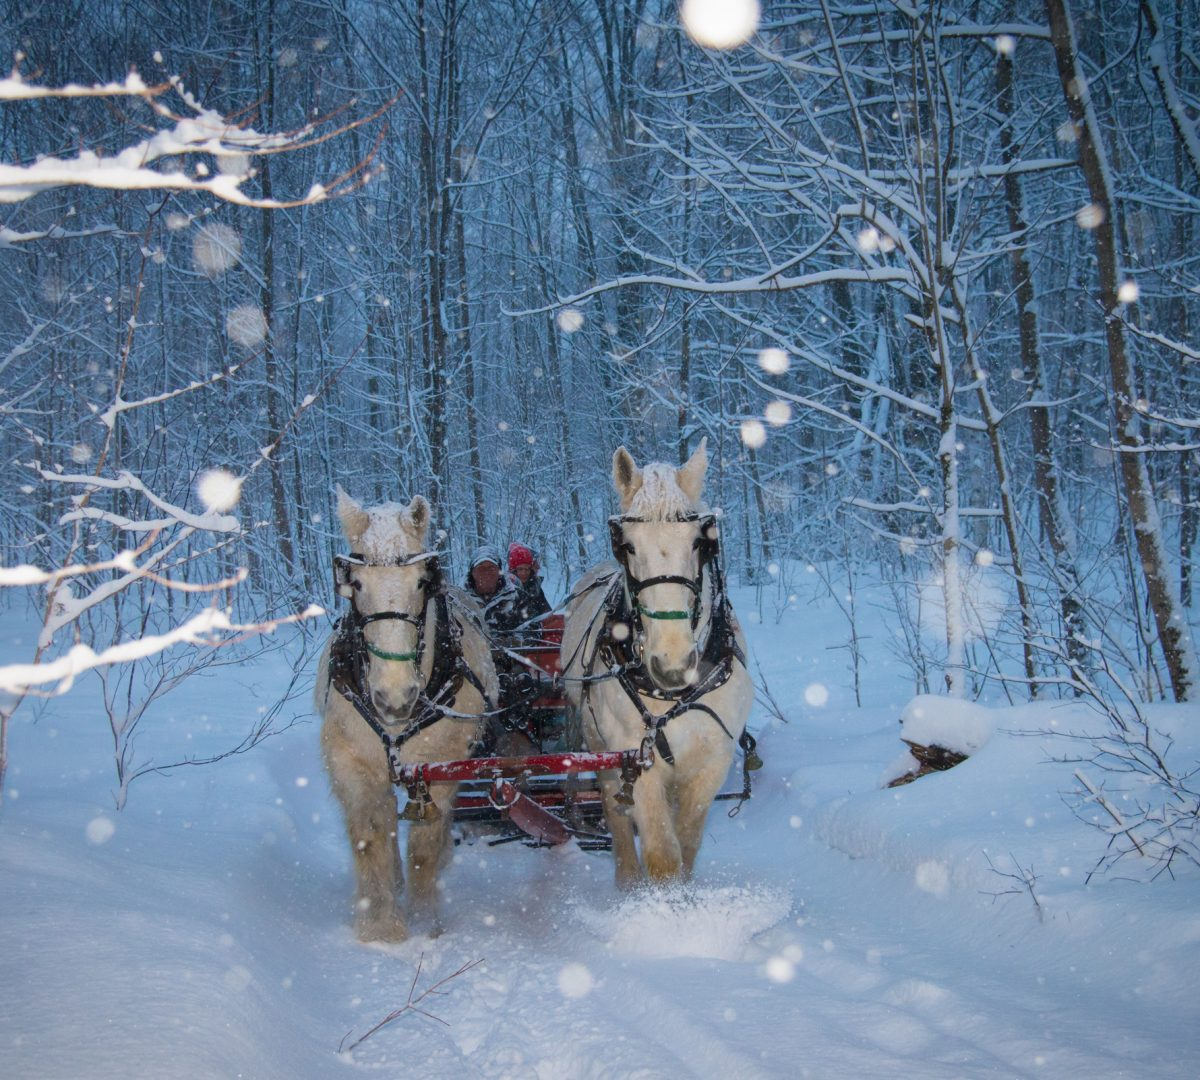 evening-sleigh-ride